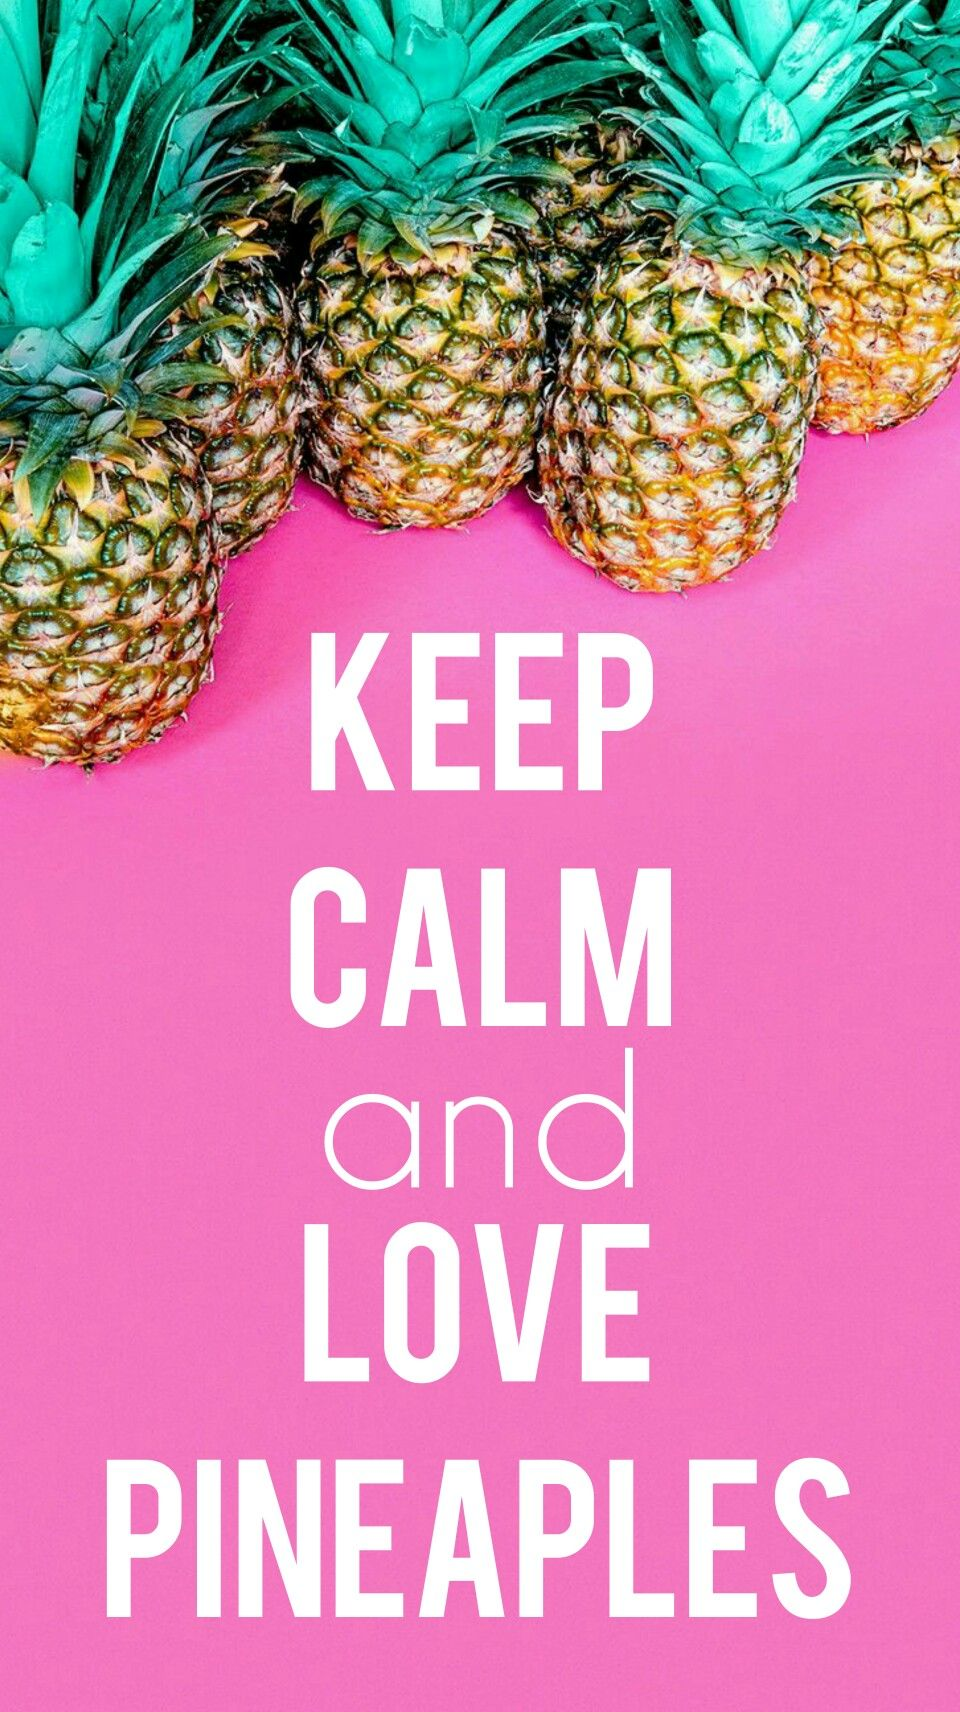 Cute Wallpapers Pineapple Watermelon For All Of Our Pineapple Loving People Pineapples